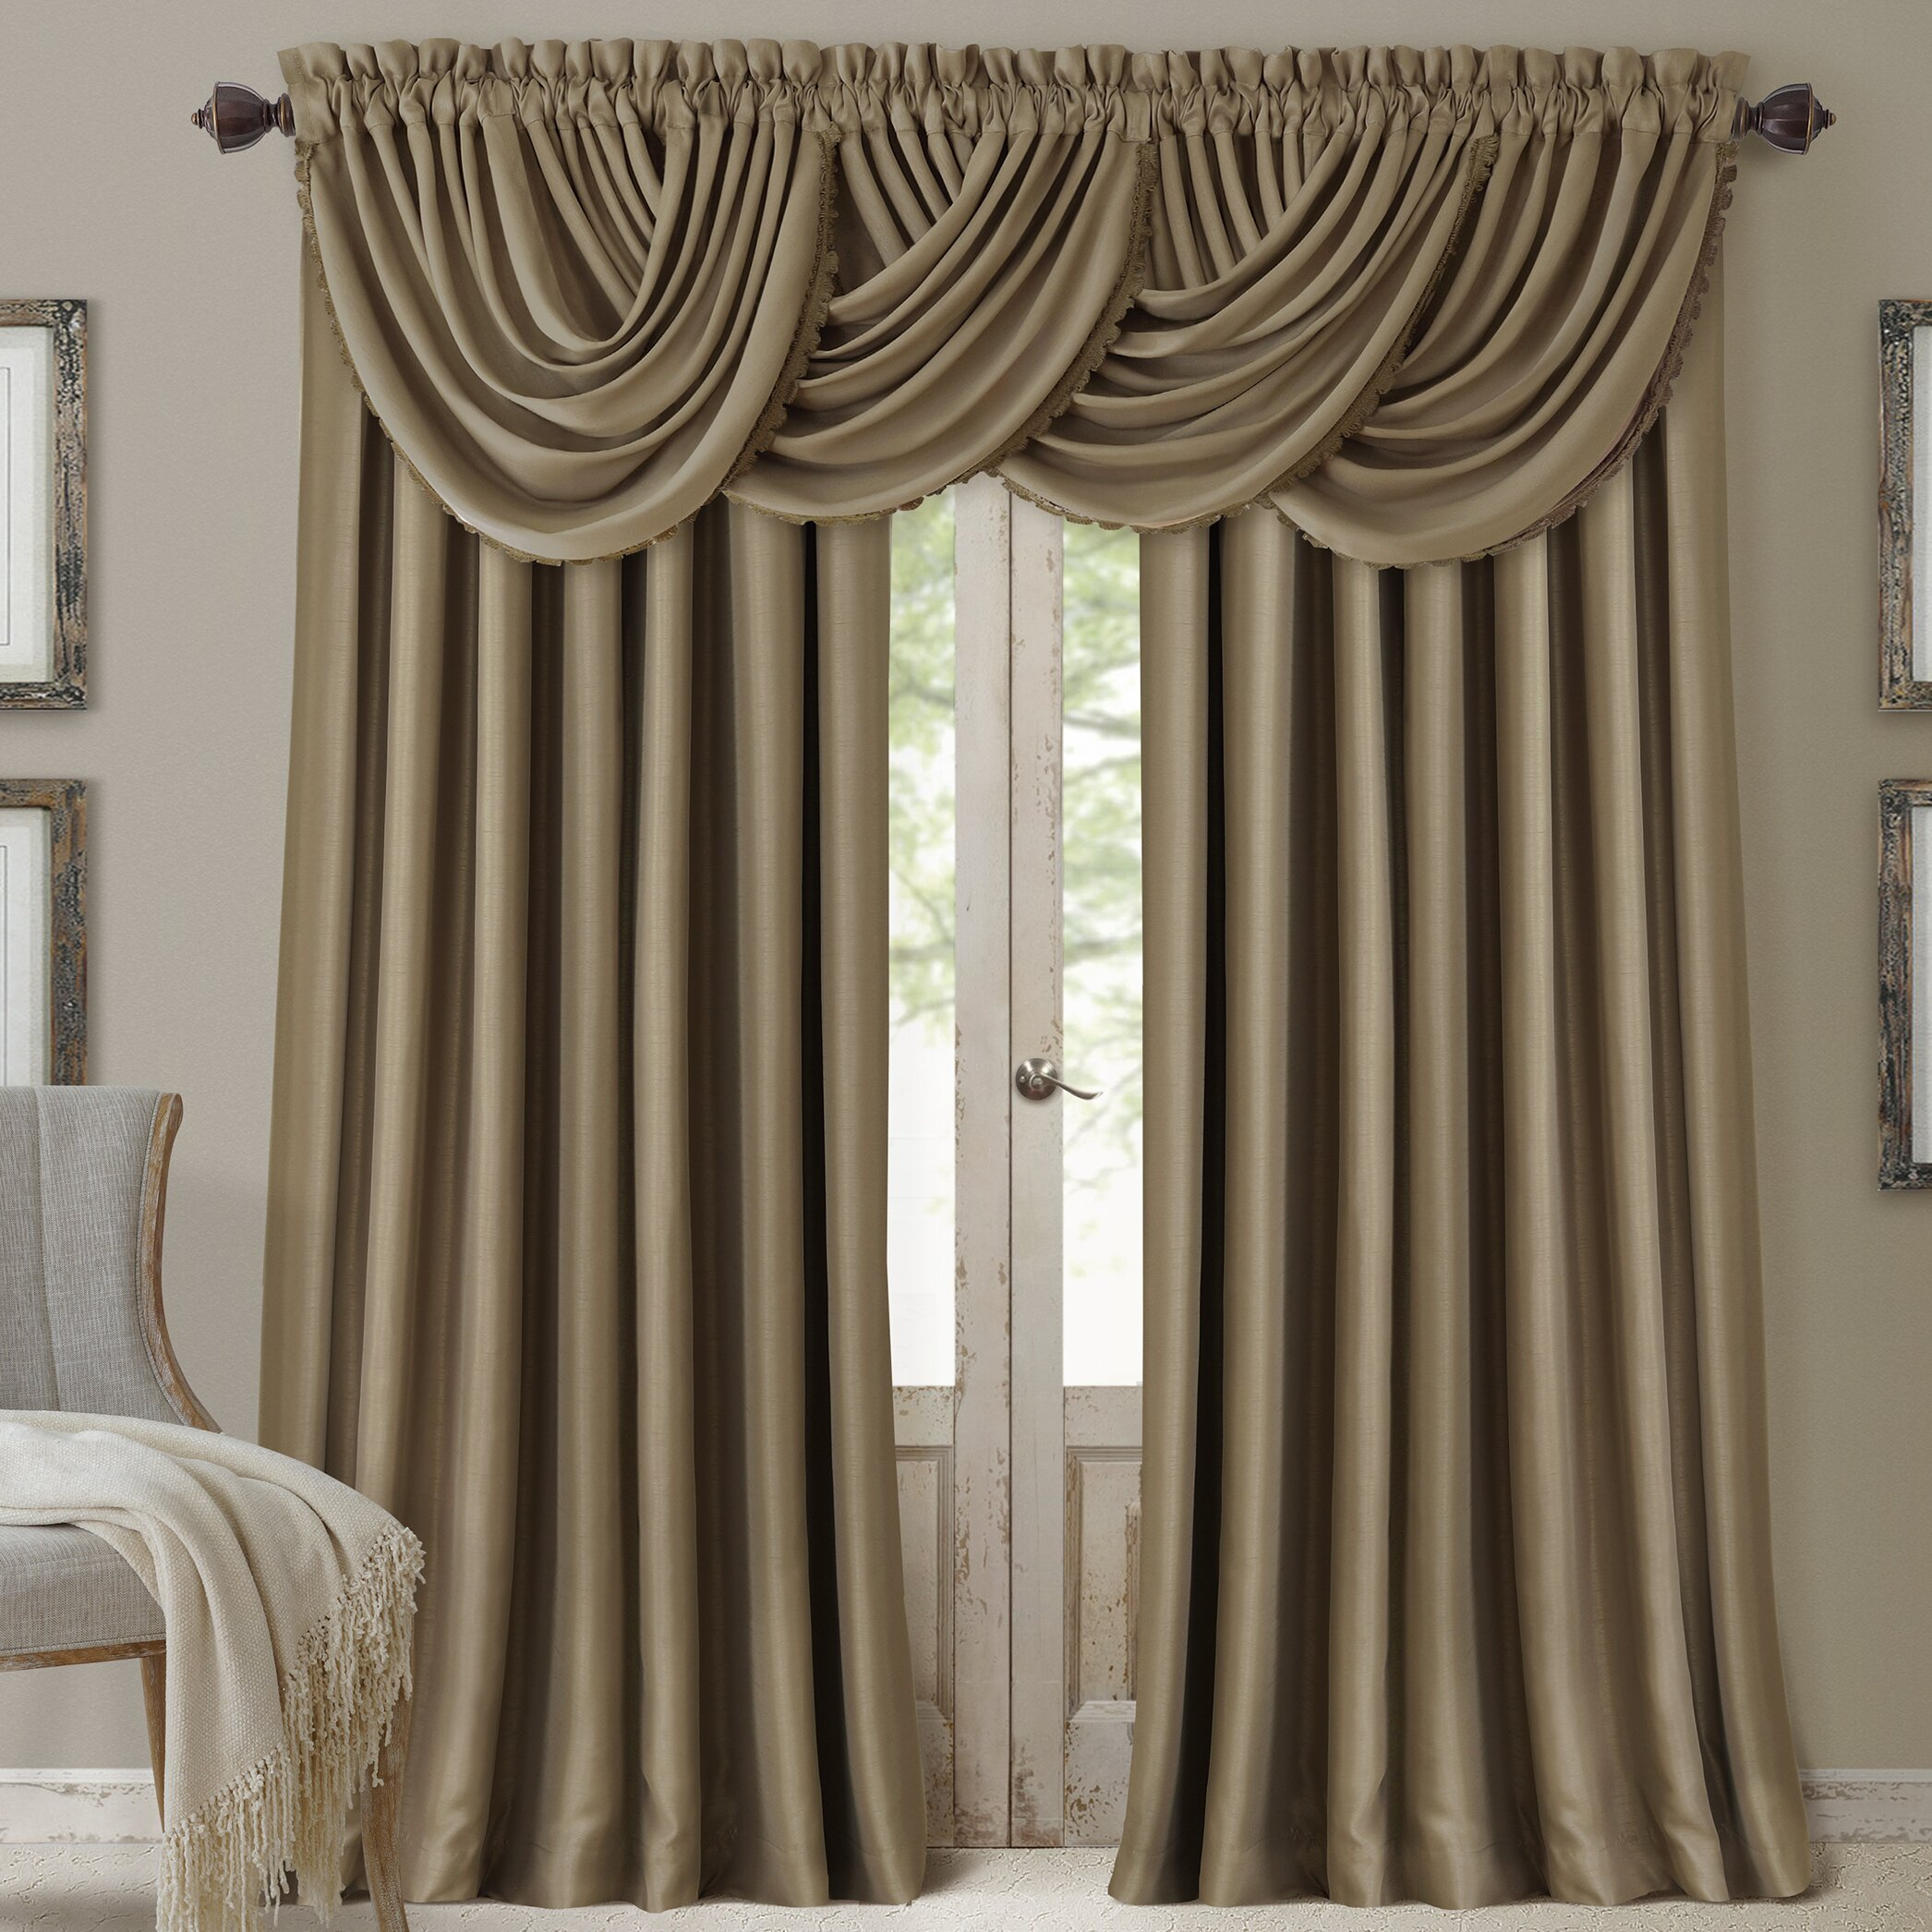 Elrene Home Fashions All Seasons Blackout Waterfall Valance Reviews Wayfair